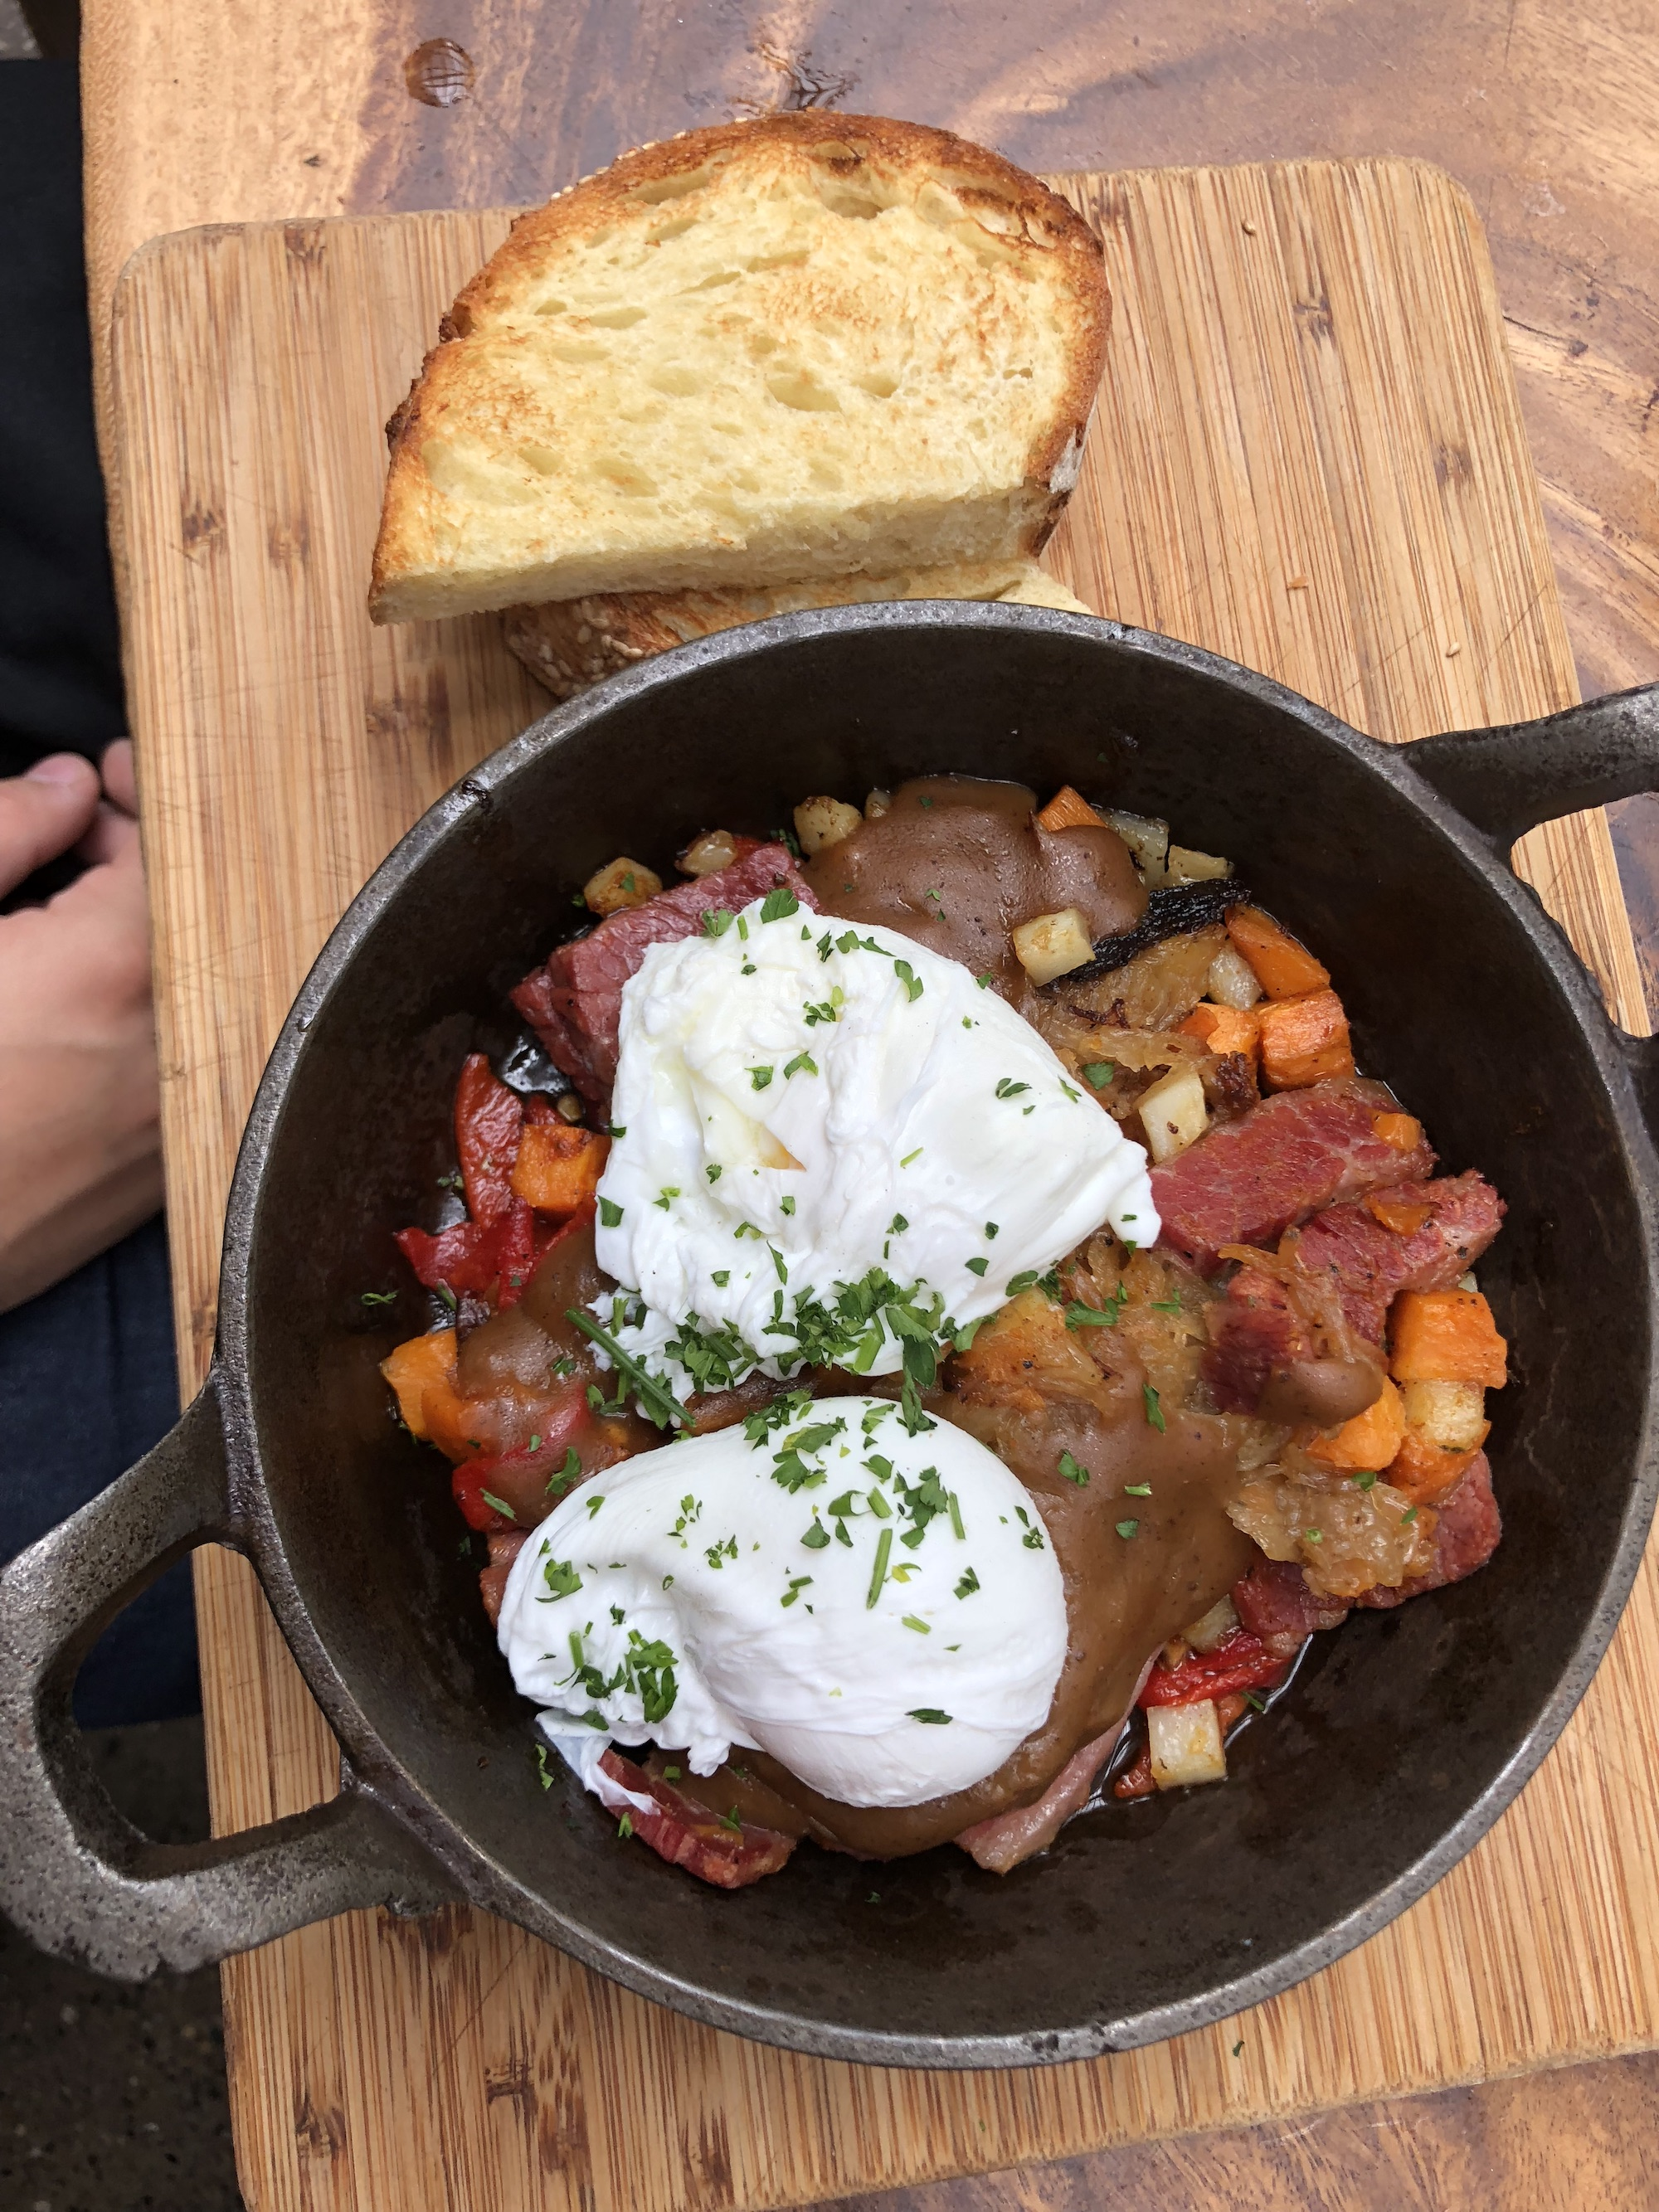 Brunch skillet from Townhouse